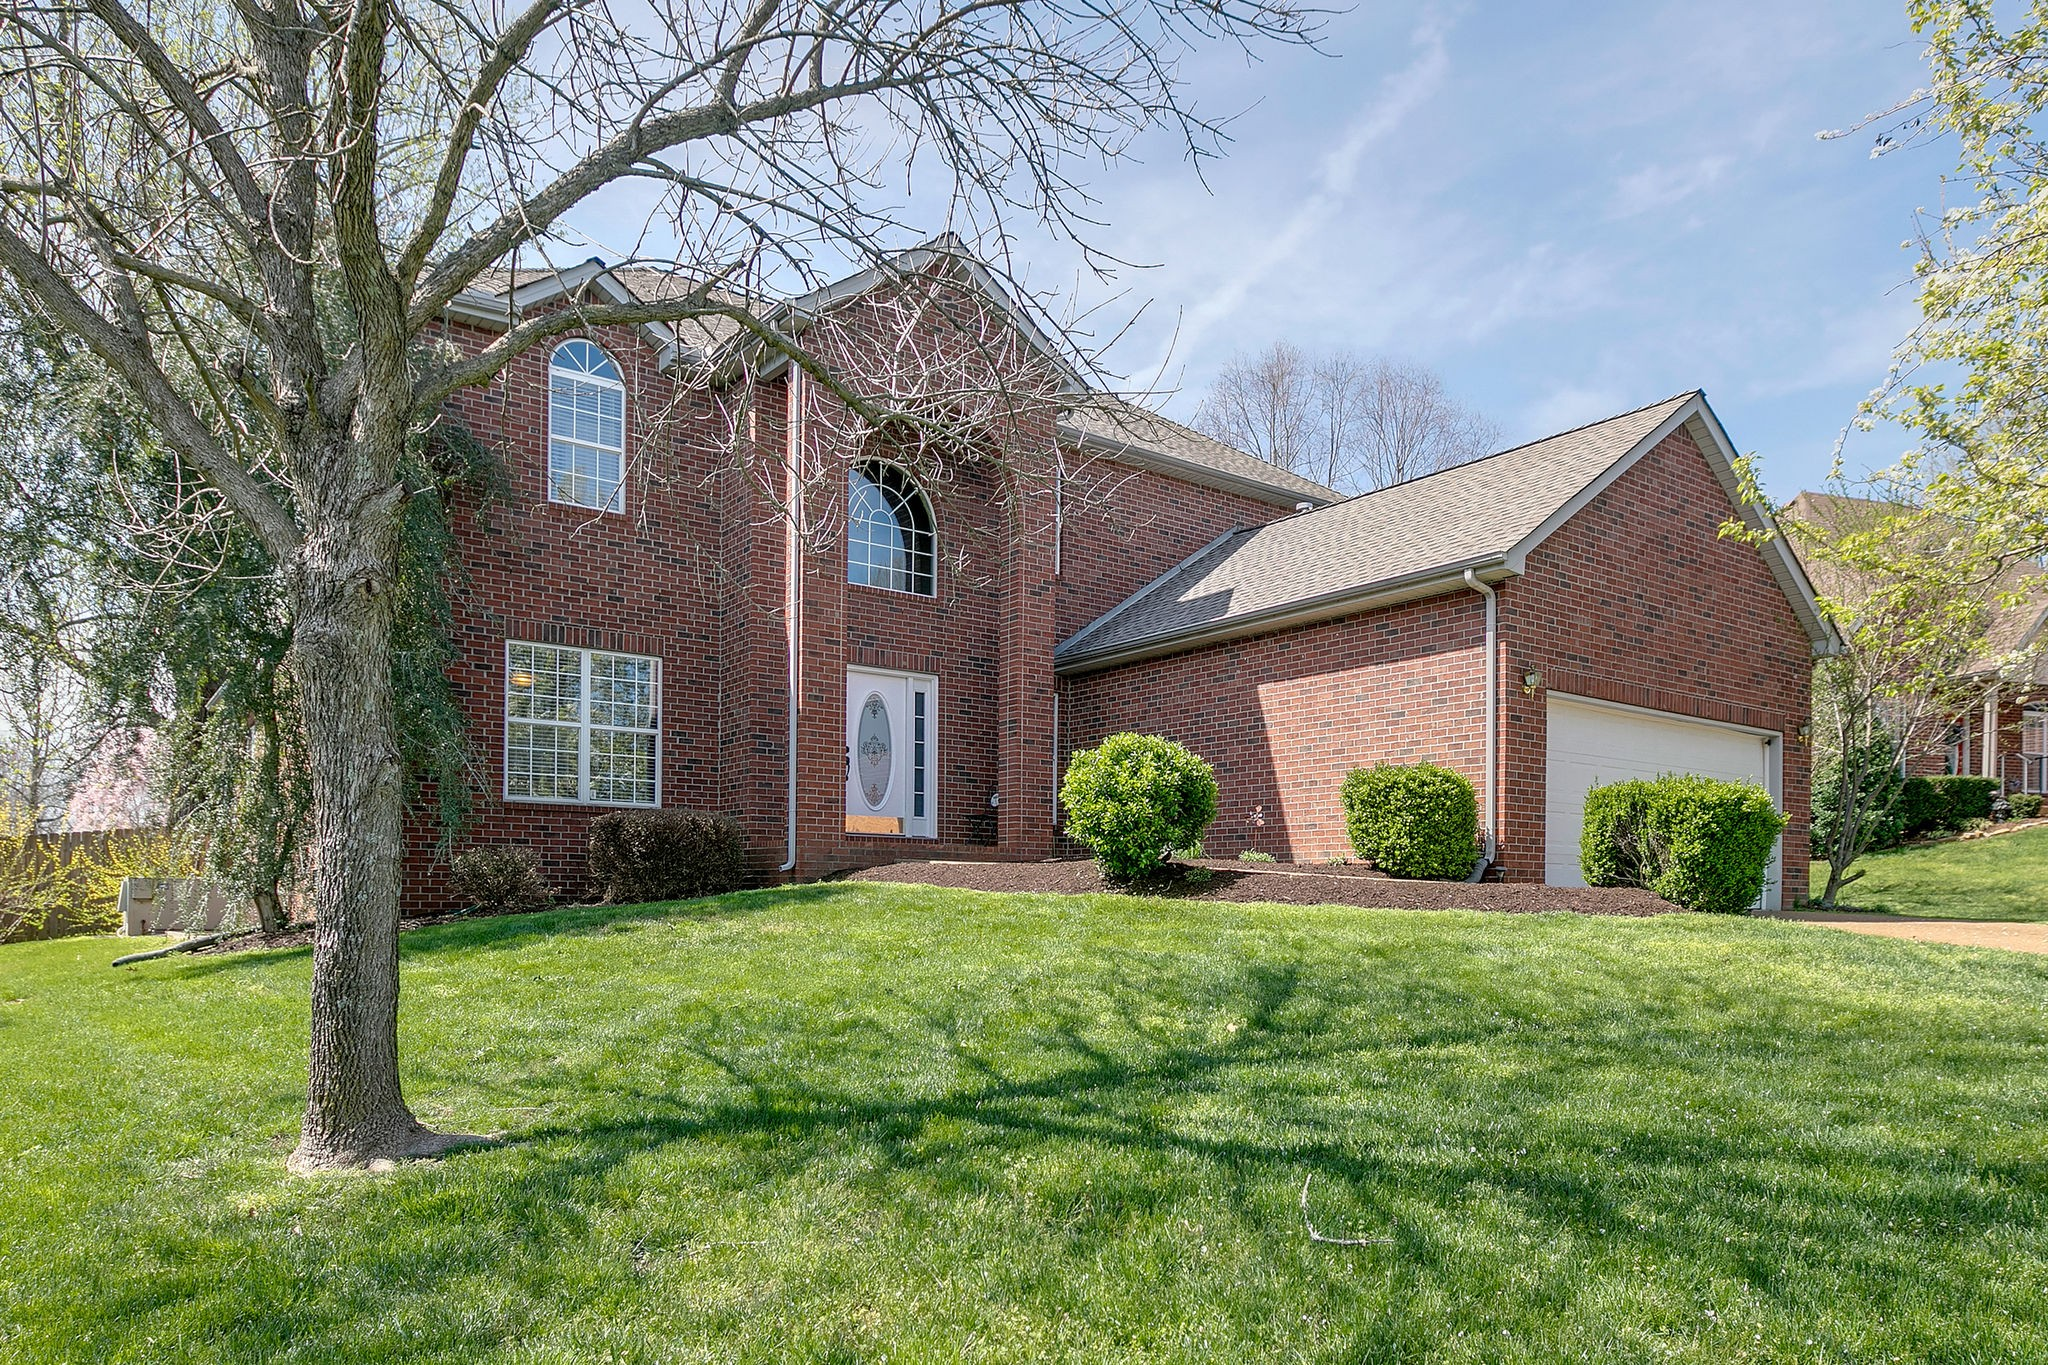 1706 Dryden Dr, Spring Hill, Tennessee